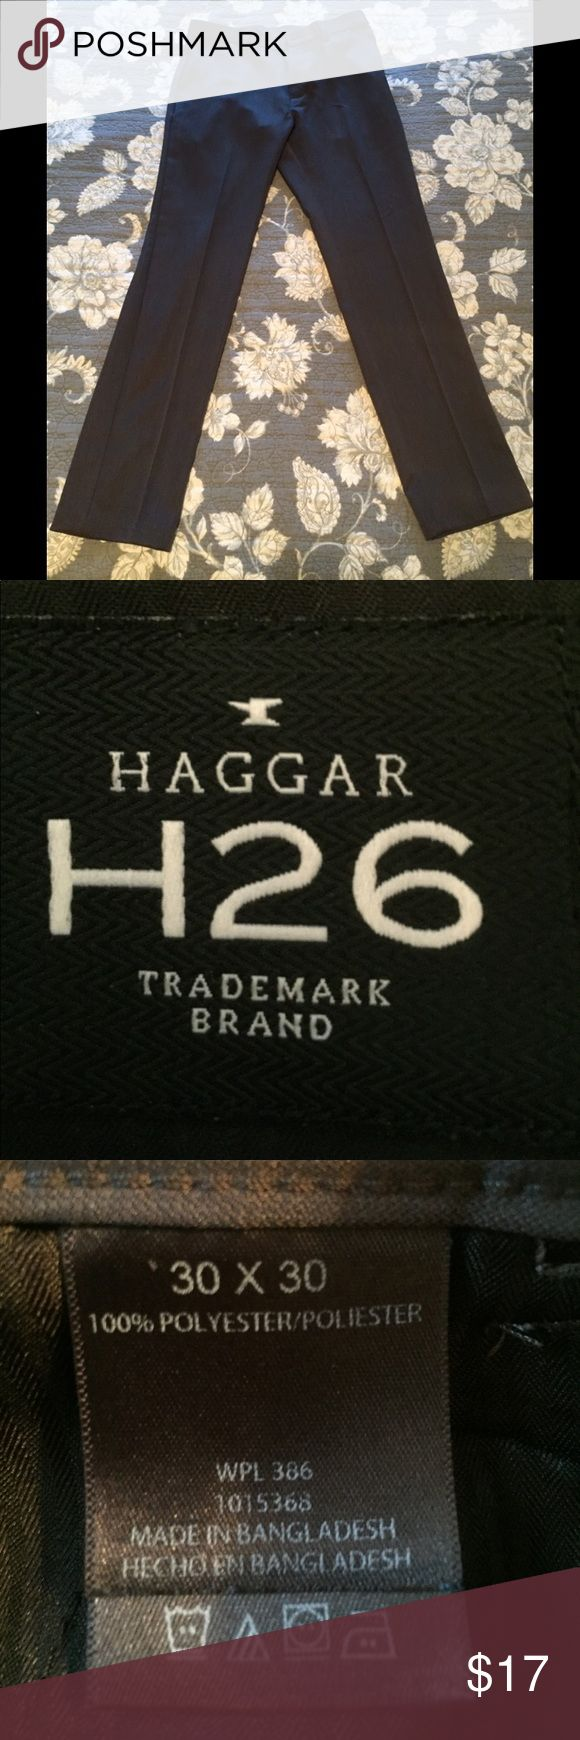 Haggar 30x30 Slim Fit Dress Pants NWOT 30x30 slim fit Haggar dress pants. Bought them for my fiancé and they didn't fit him unfortunately. Brand new. Haggar Pants Dress